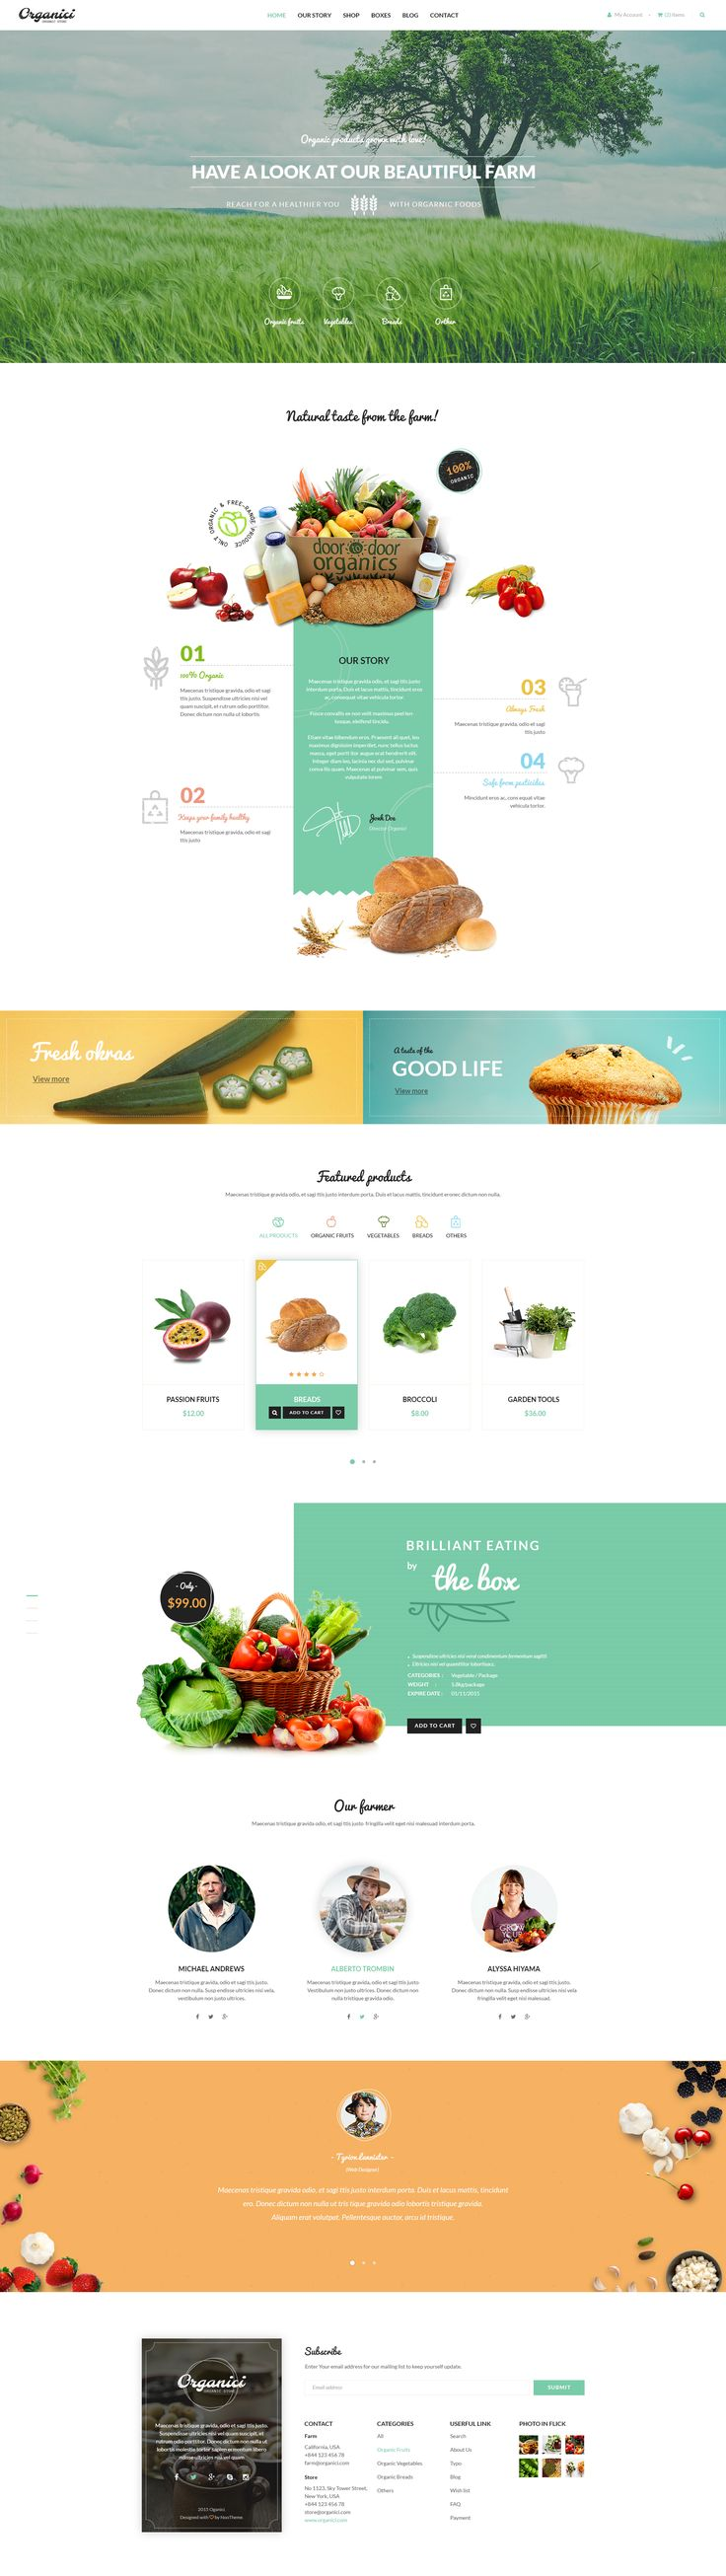 Organici is an advanced WordPress theme that perfectly designed and developed for all kinds of Organic Store, including organic food, organic fruits and vegetables, organic bakery, organic farm, coffee, cosmetic, etc. Download: http://bit.ly/organiciwp